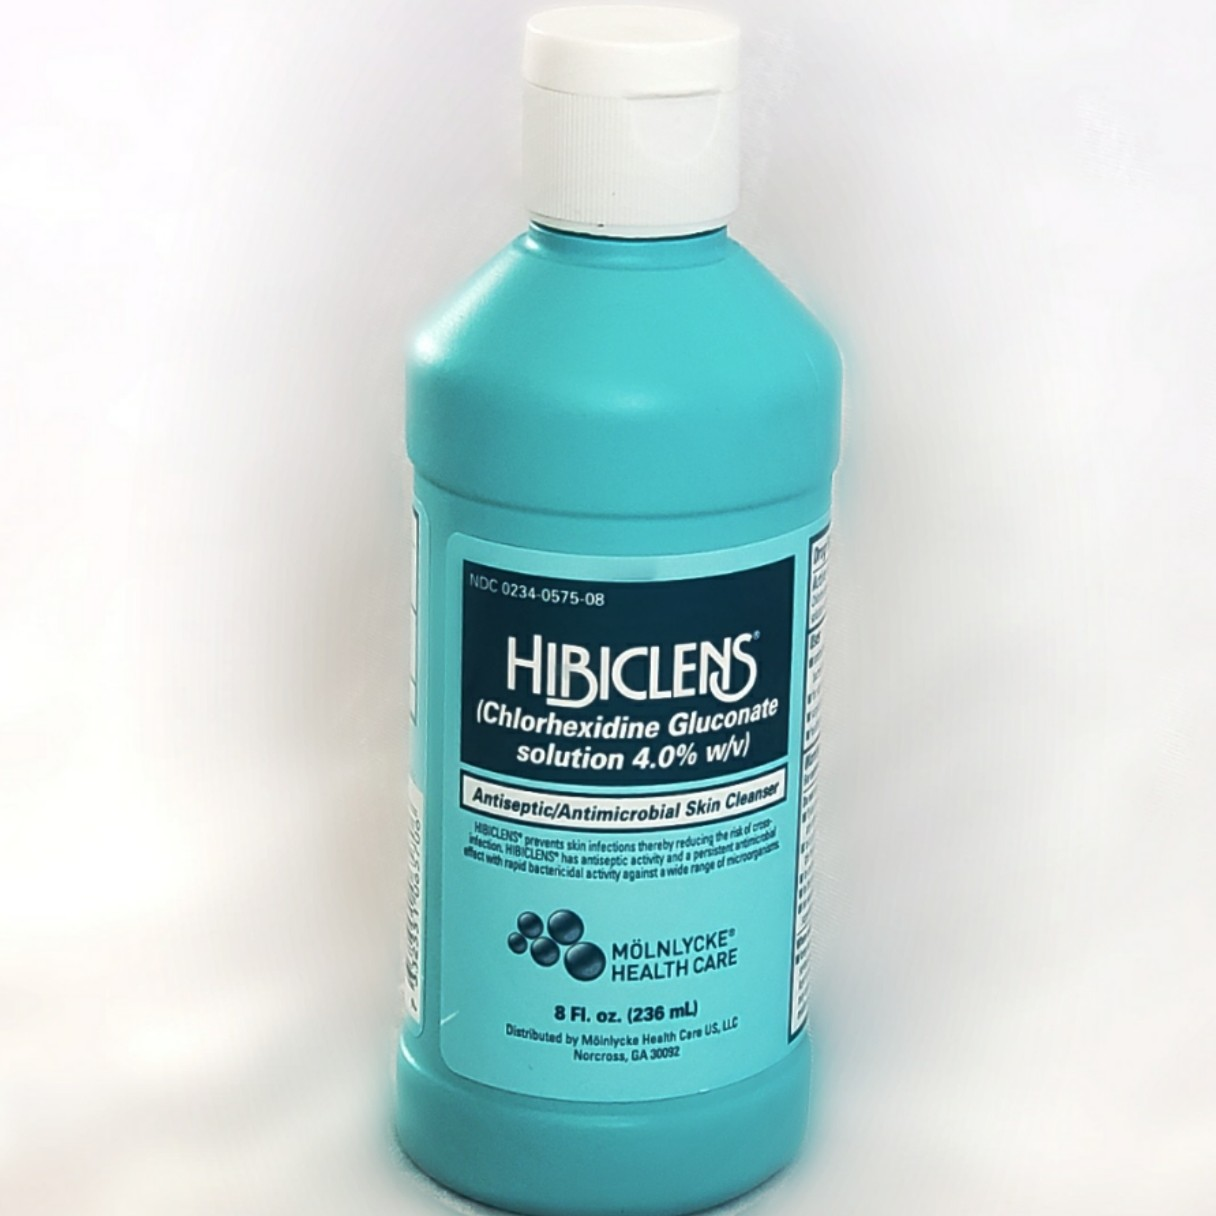 Hibiclens® (Chlorhexidine Gluconate solution 4.0% w/v) Surgical Grade Antiseptic / Antimicrobial Skin Cleanser